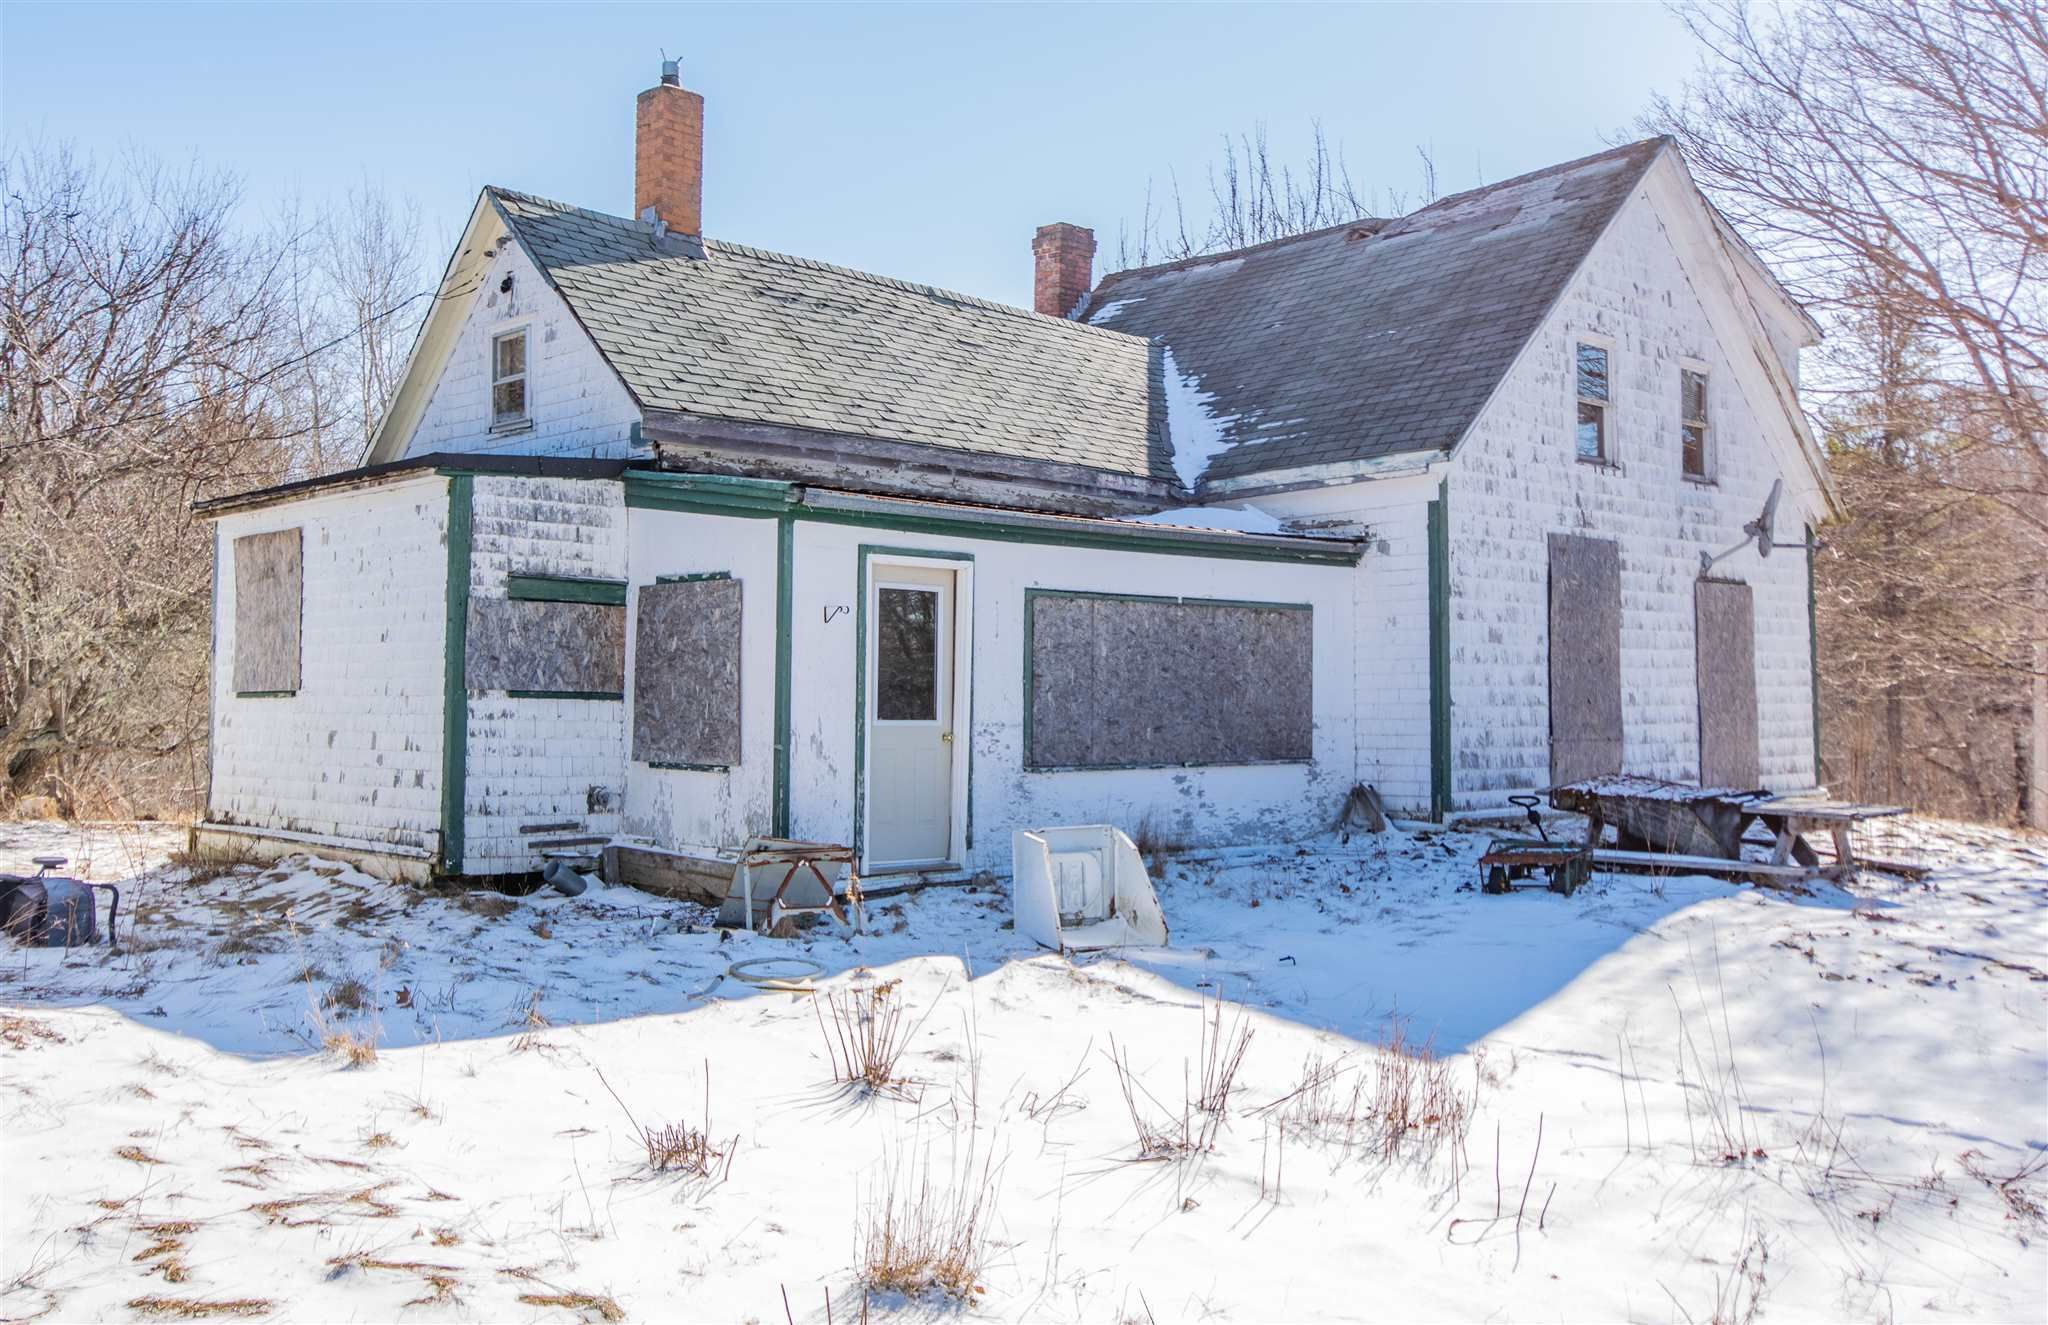 Main Photo: 675 Piedmont Valley Road in Piedmont: 108-Rural Pictou County Vacant Land for sale (Northern Region)  : MLS®# 202105406